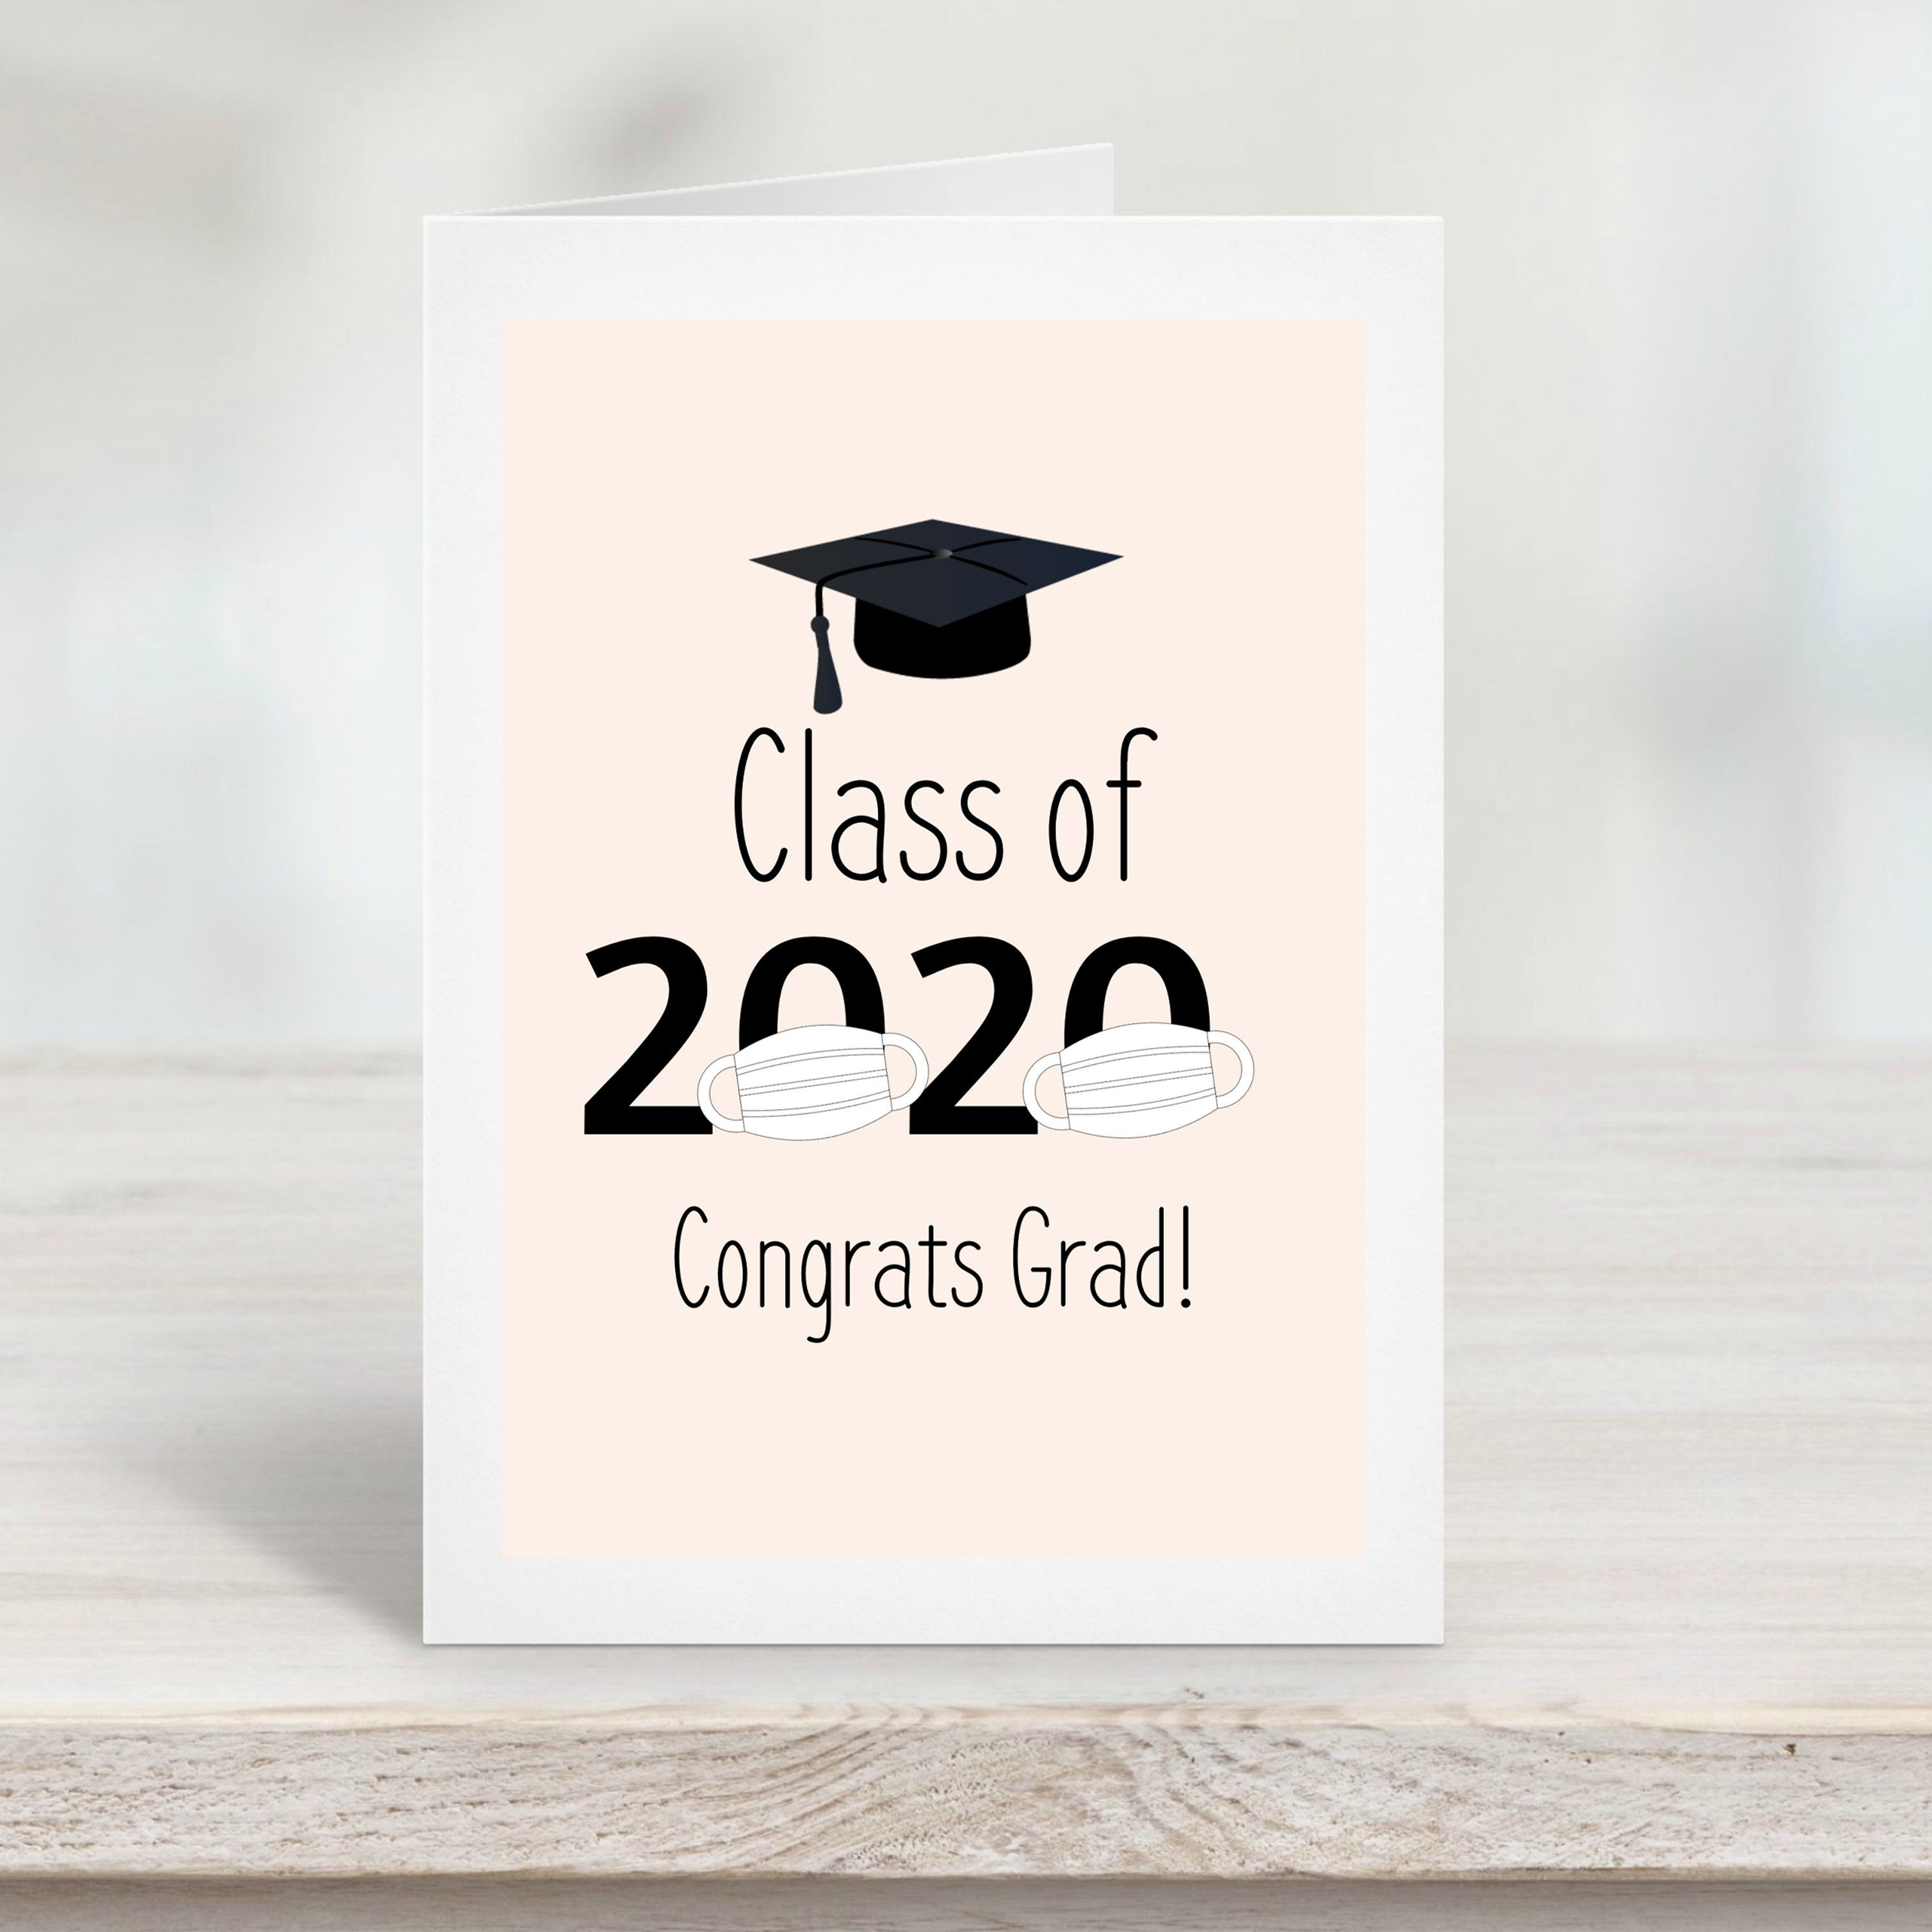 Photo of Graduation Card Template, Class of 2020 Graduation Cap, Simplistic Modern Editable Corjl Template, Grad Celebration